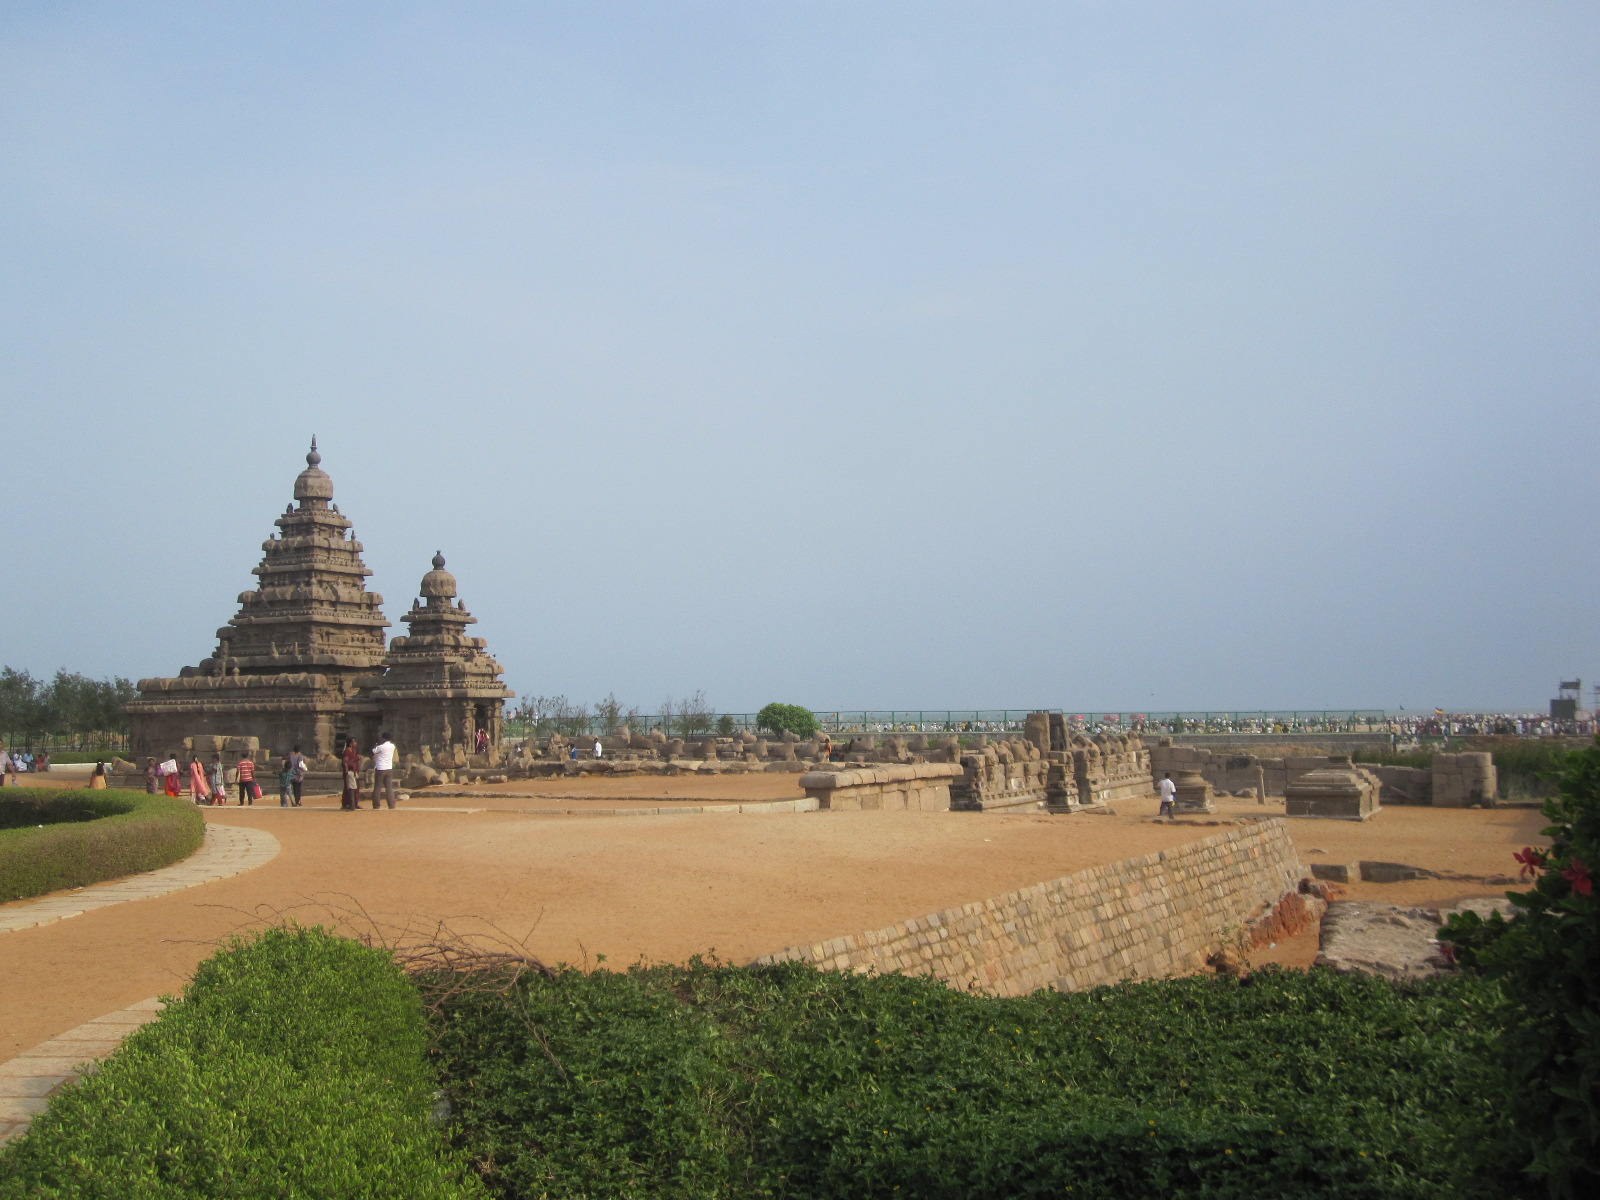 essay about mahabalipuram This particular relief is the most well-known of the monuments at mamallapuram  that were carved from massive granite boulders naturally scattered throughout.